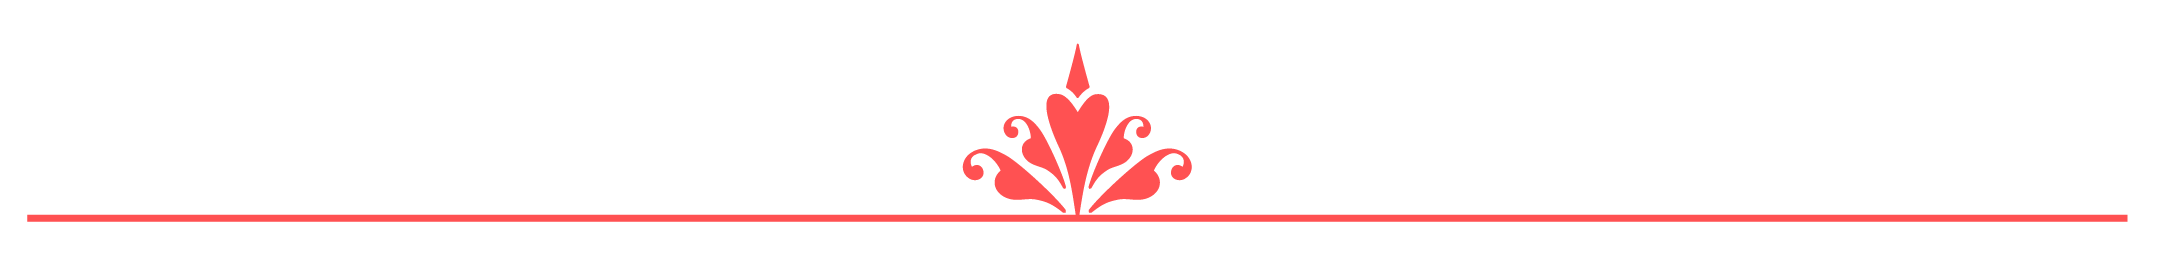 Line flourish png. All in previous post